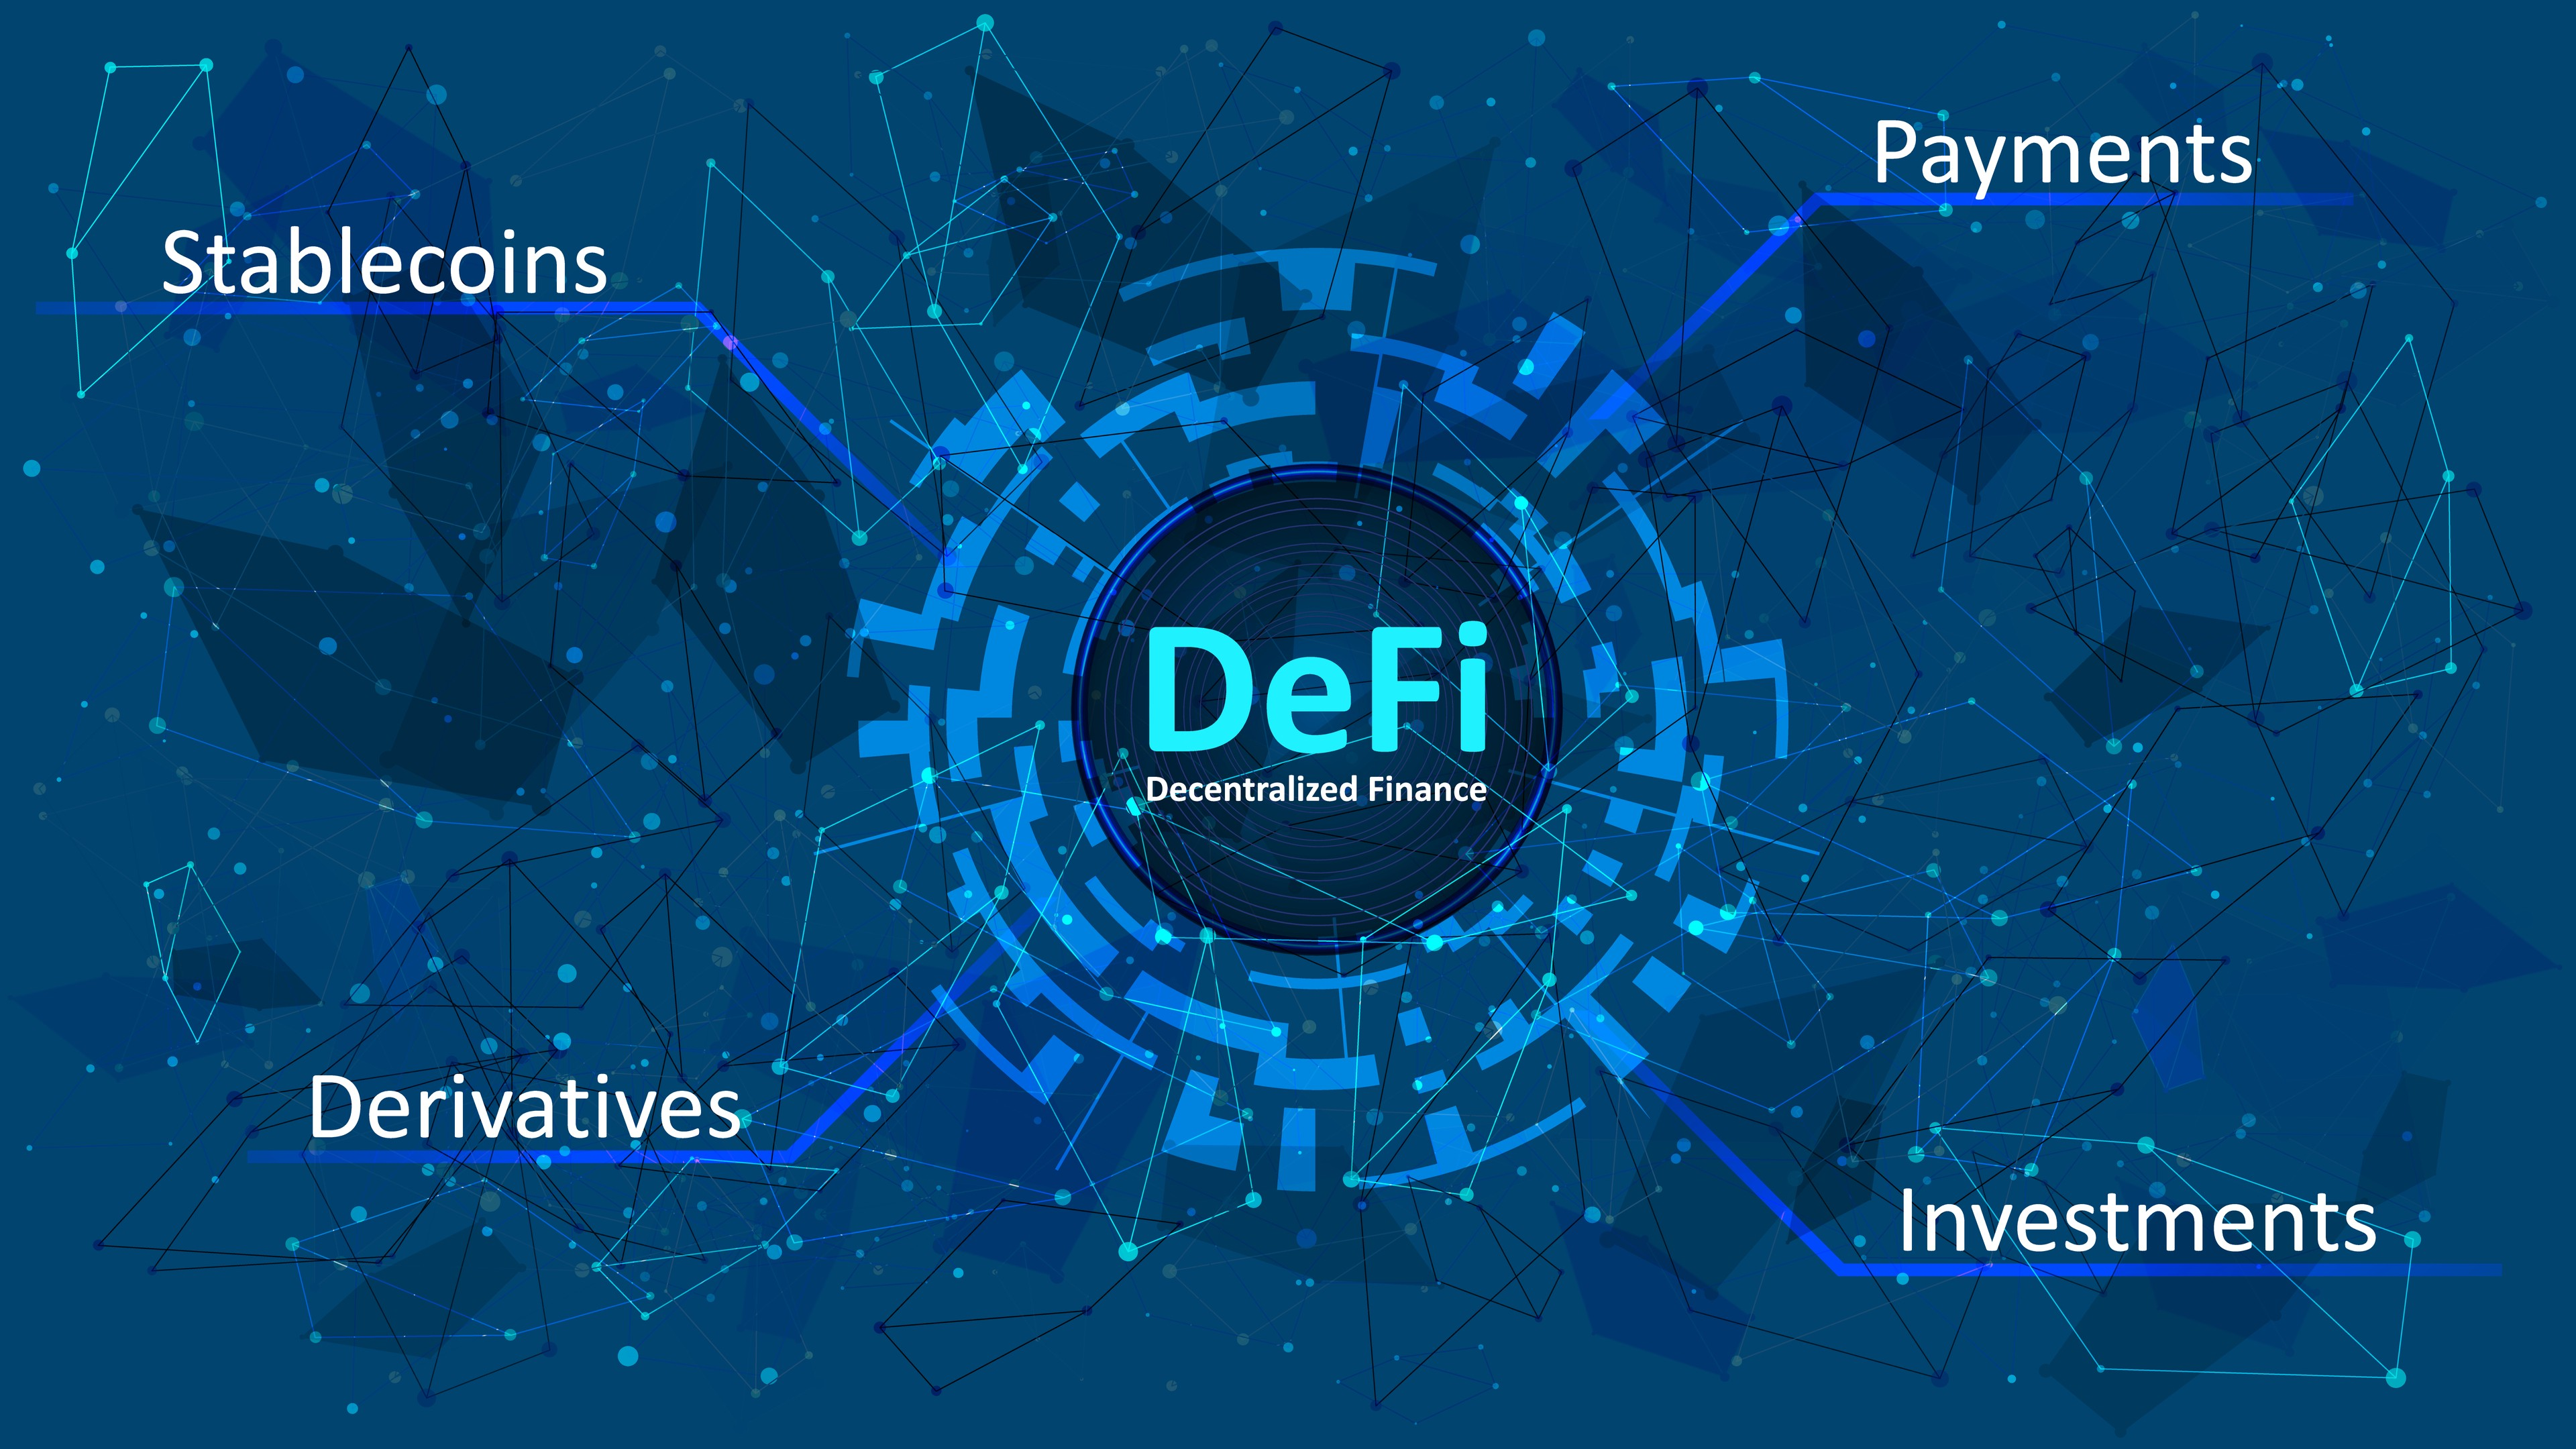 DeFi Smart Contract Developer in Chittoor